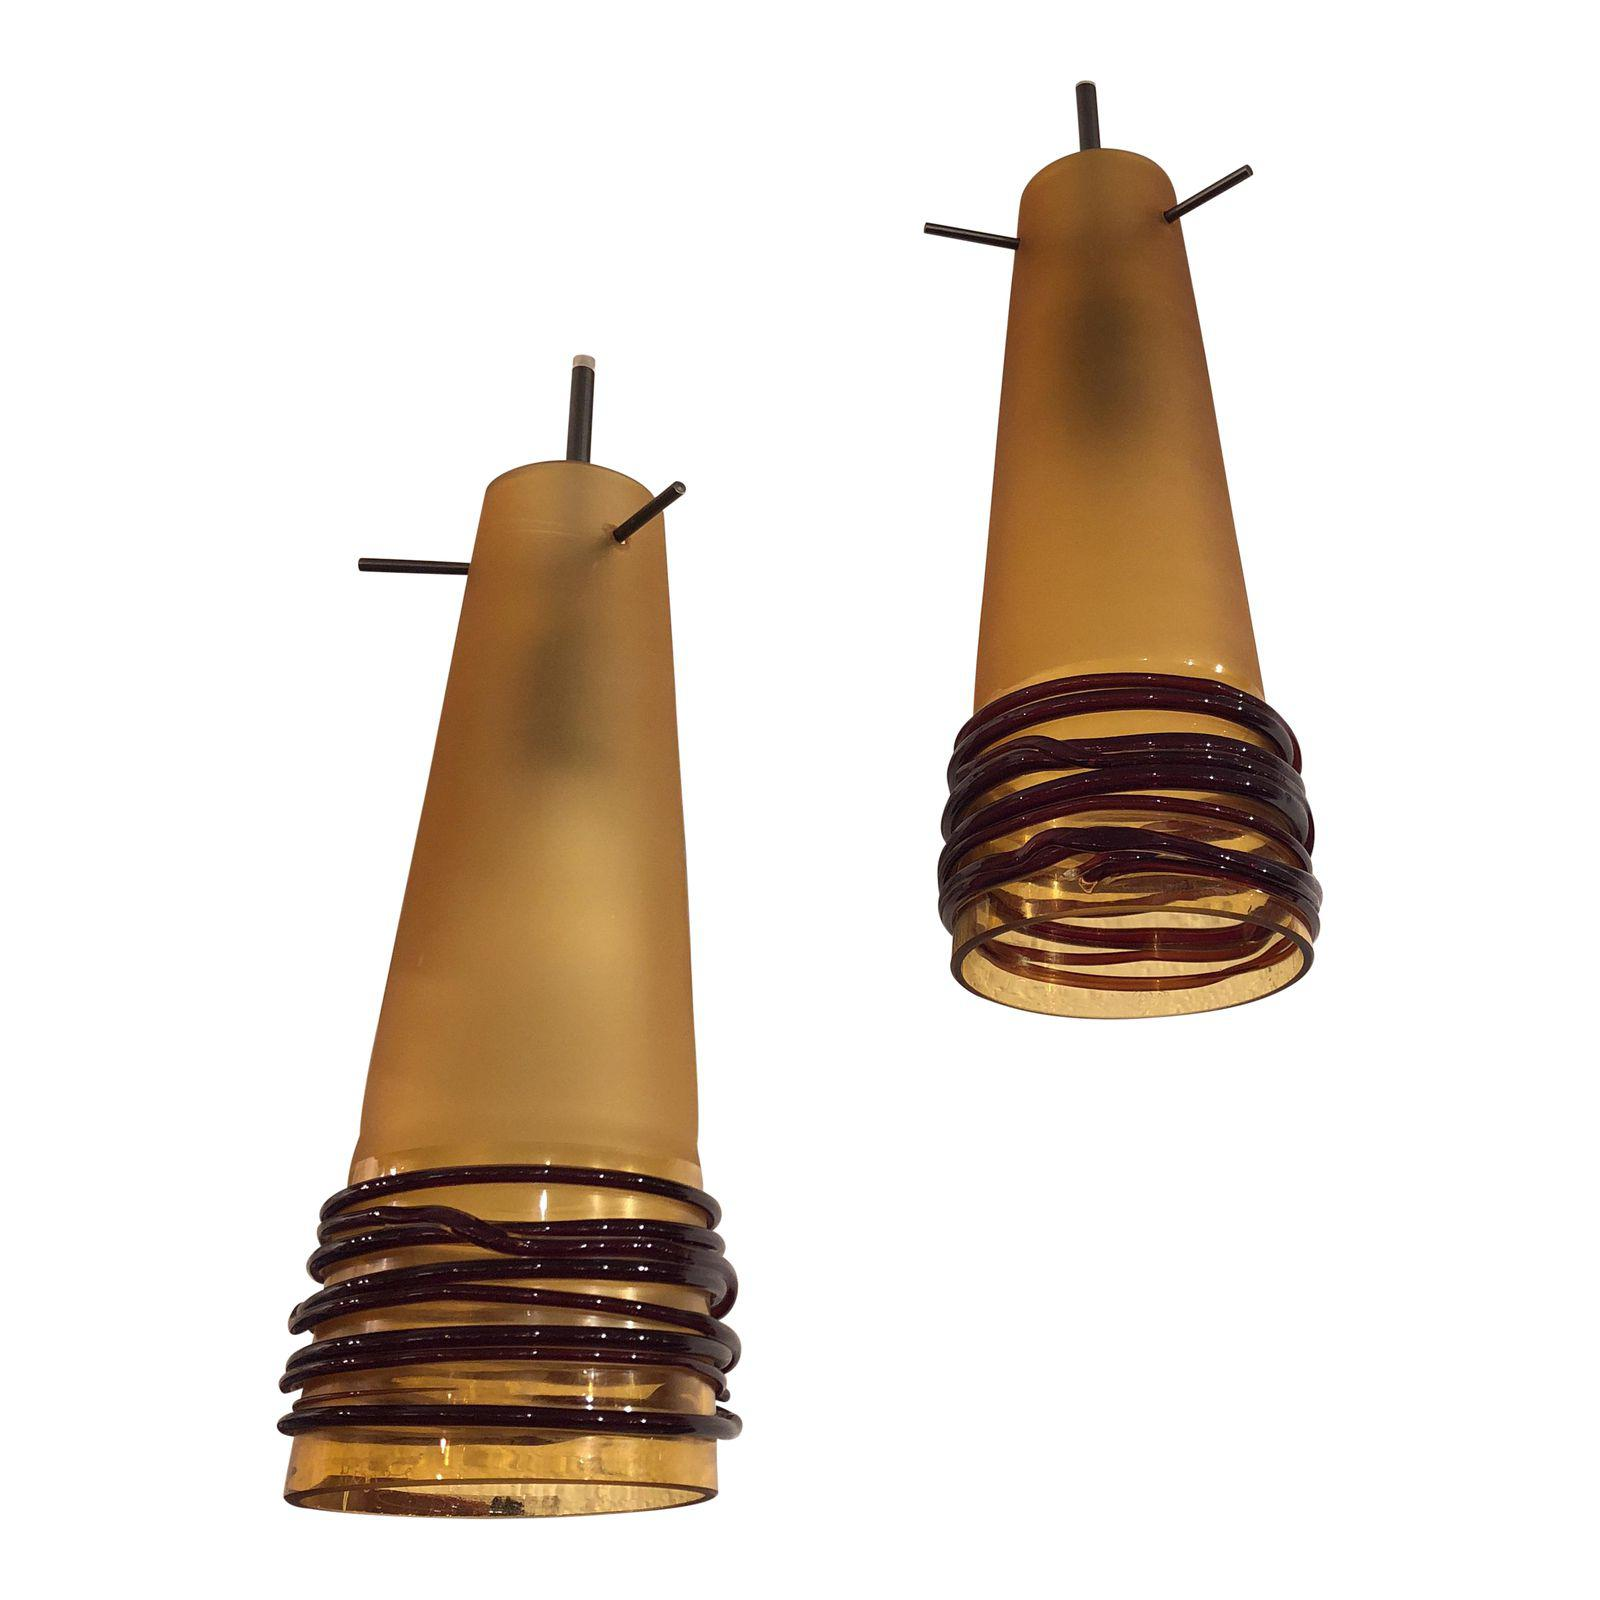 Oggetti luce hand blown glass pendant lights a pair design plus oggetti luce hand blown glass pendant lights a pair design plus gallery aloadofball Images